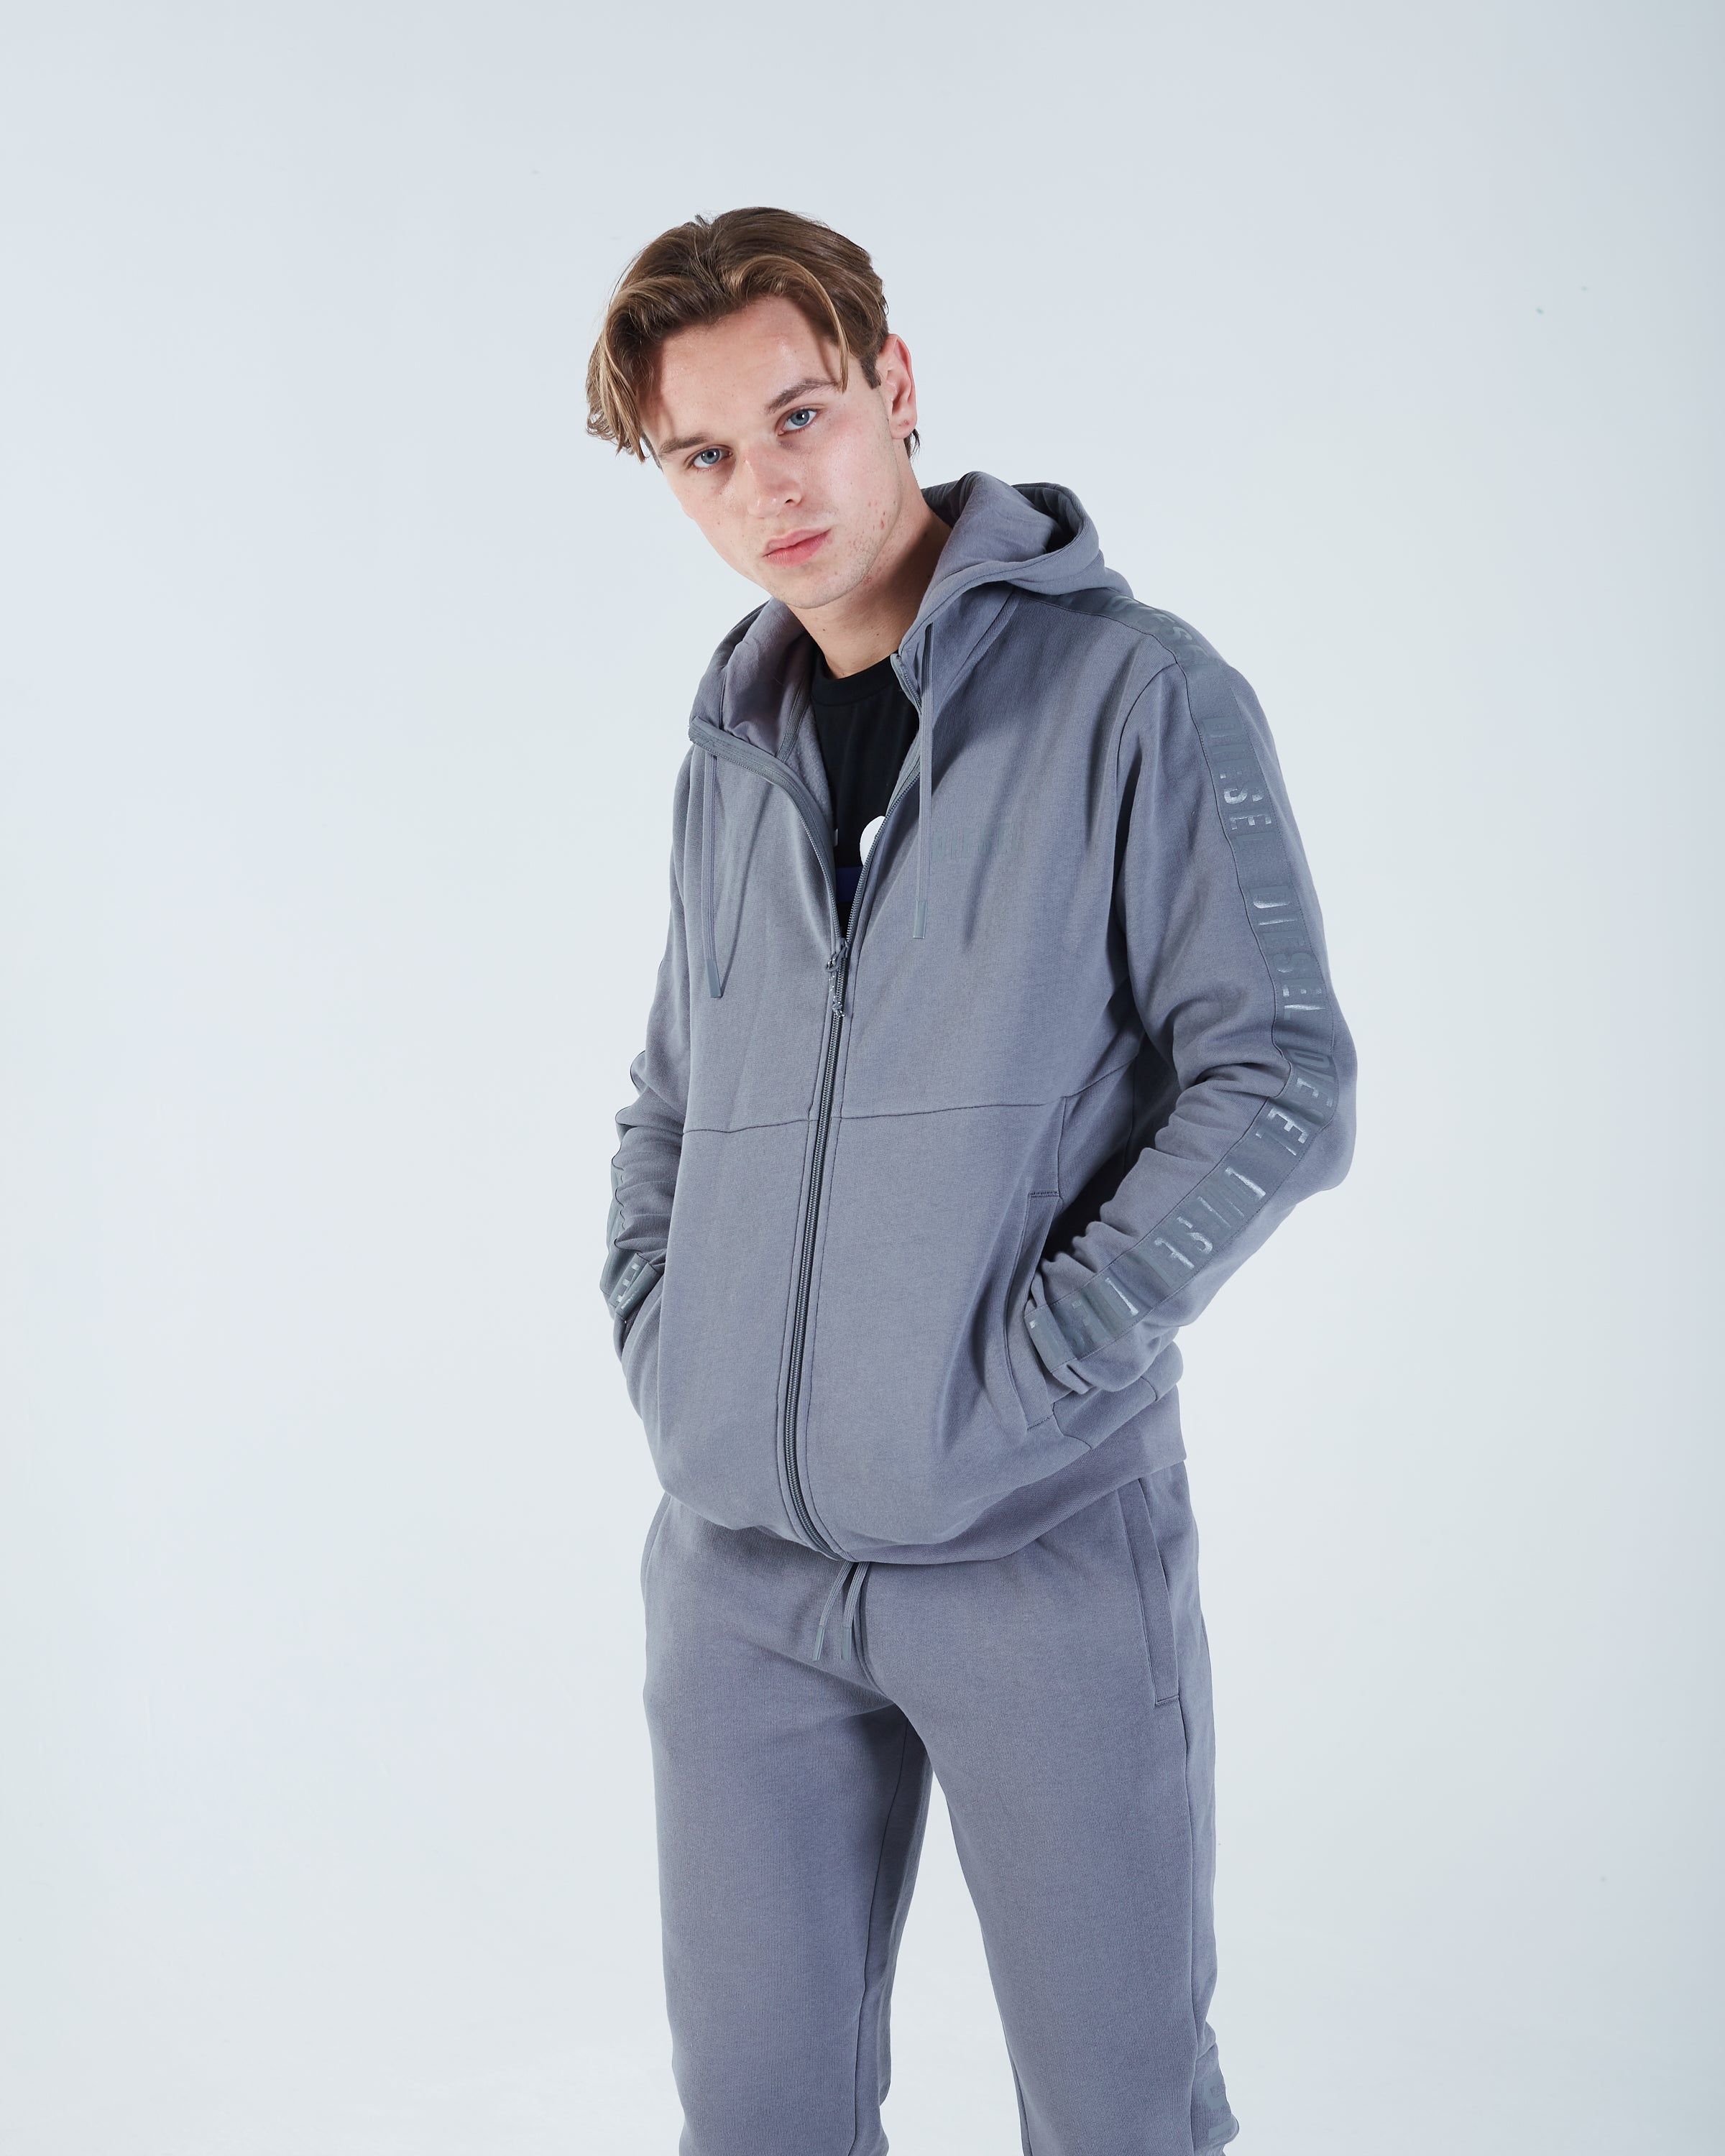 Domenico Zipper Hurricane Grey